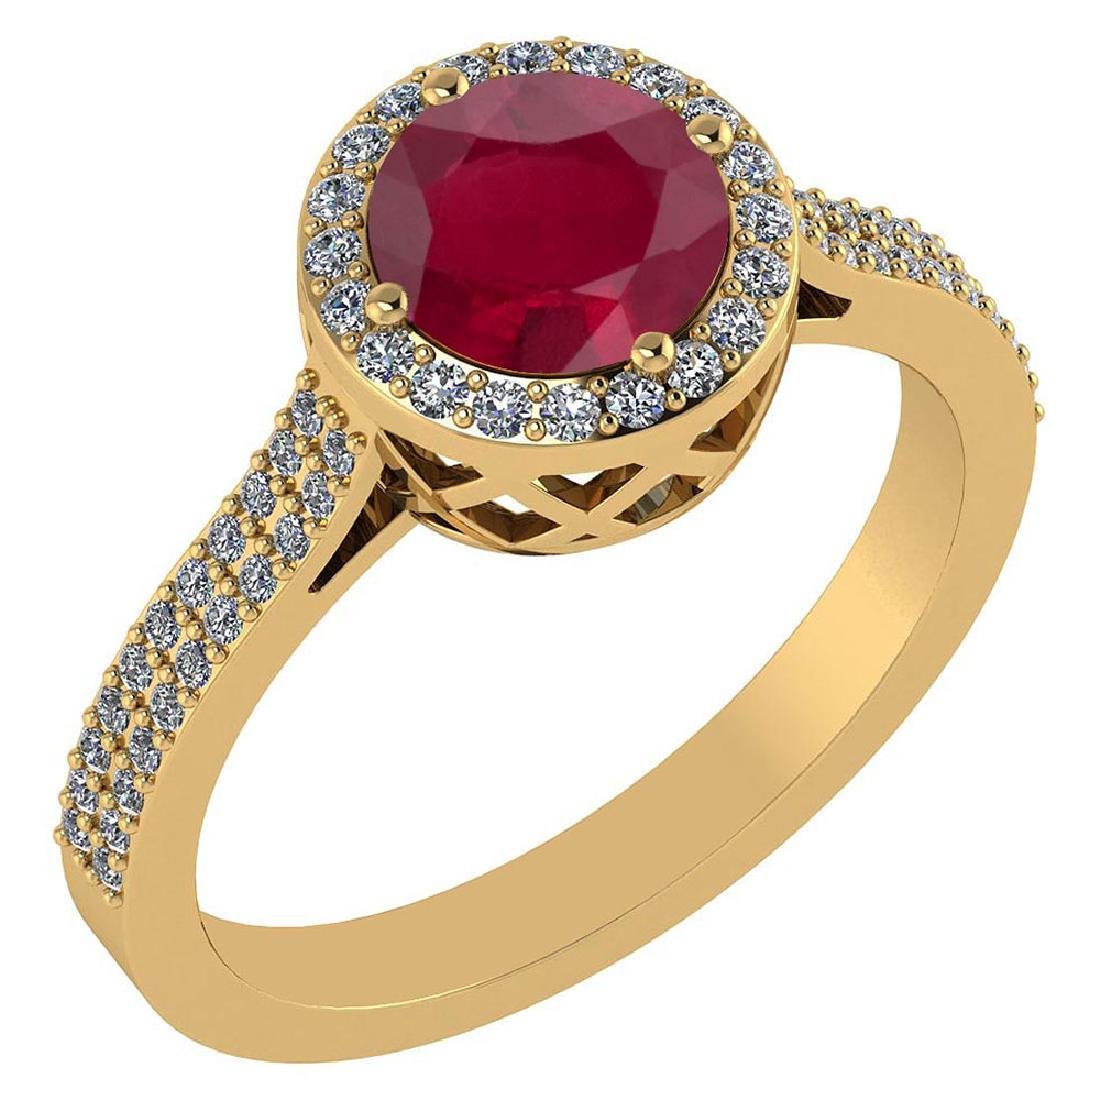 1.77 Ctw Ruby And Diamond 14k Yellow Gold Halo Ring